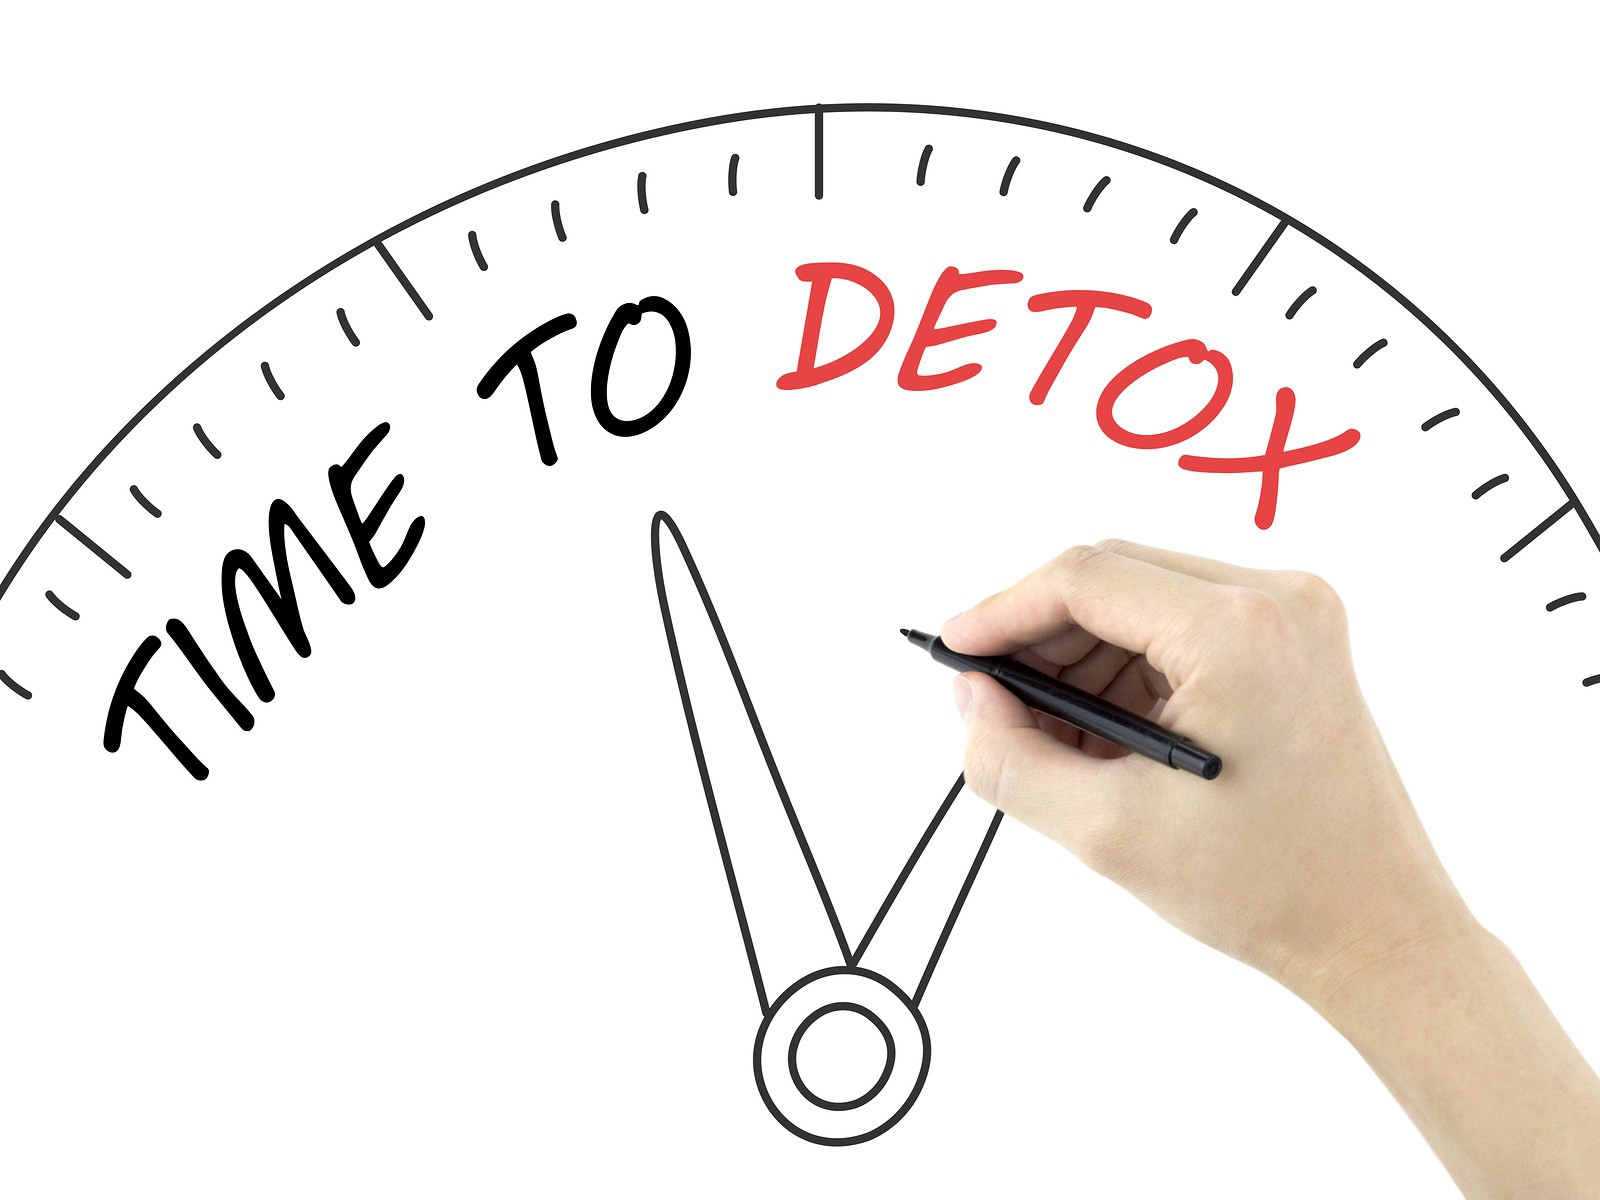 detox your life by clearing out